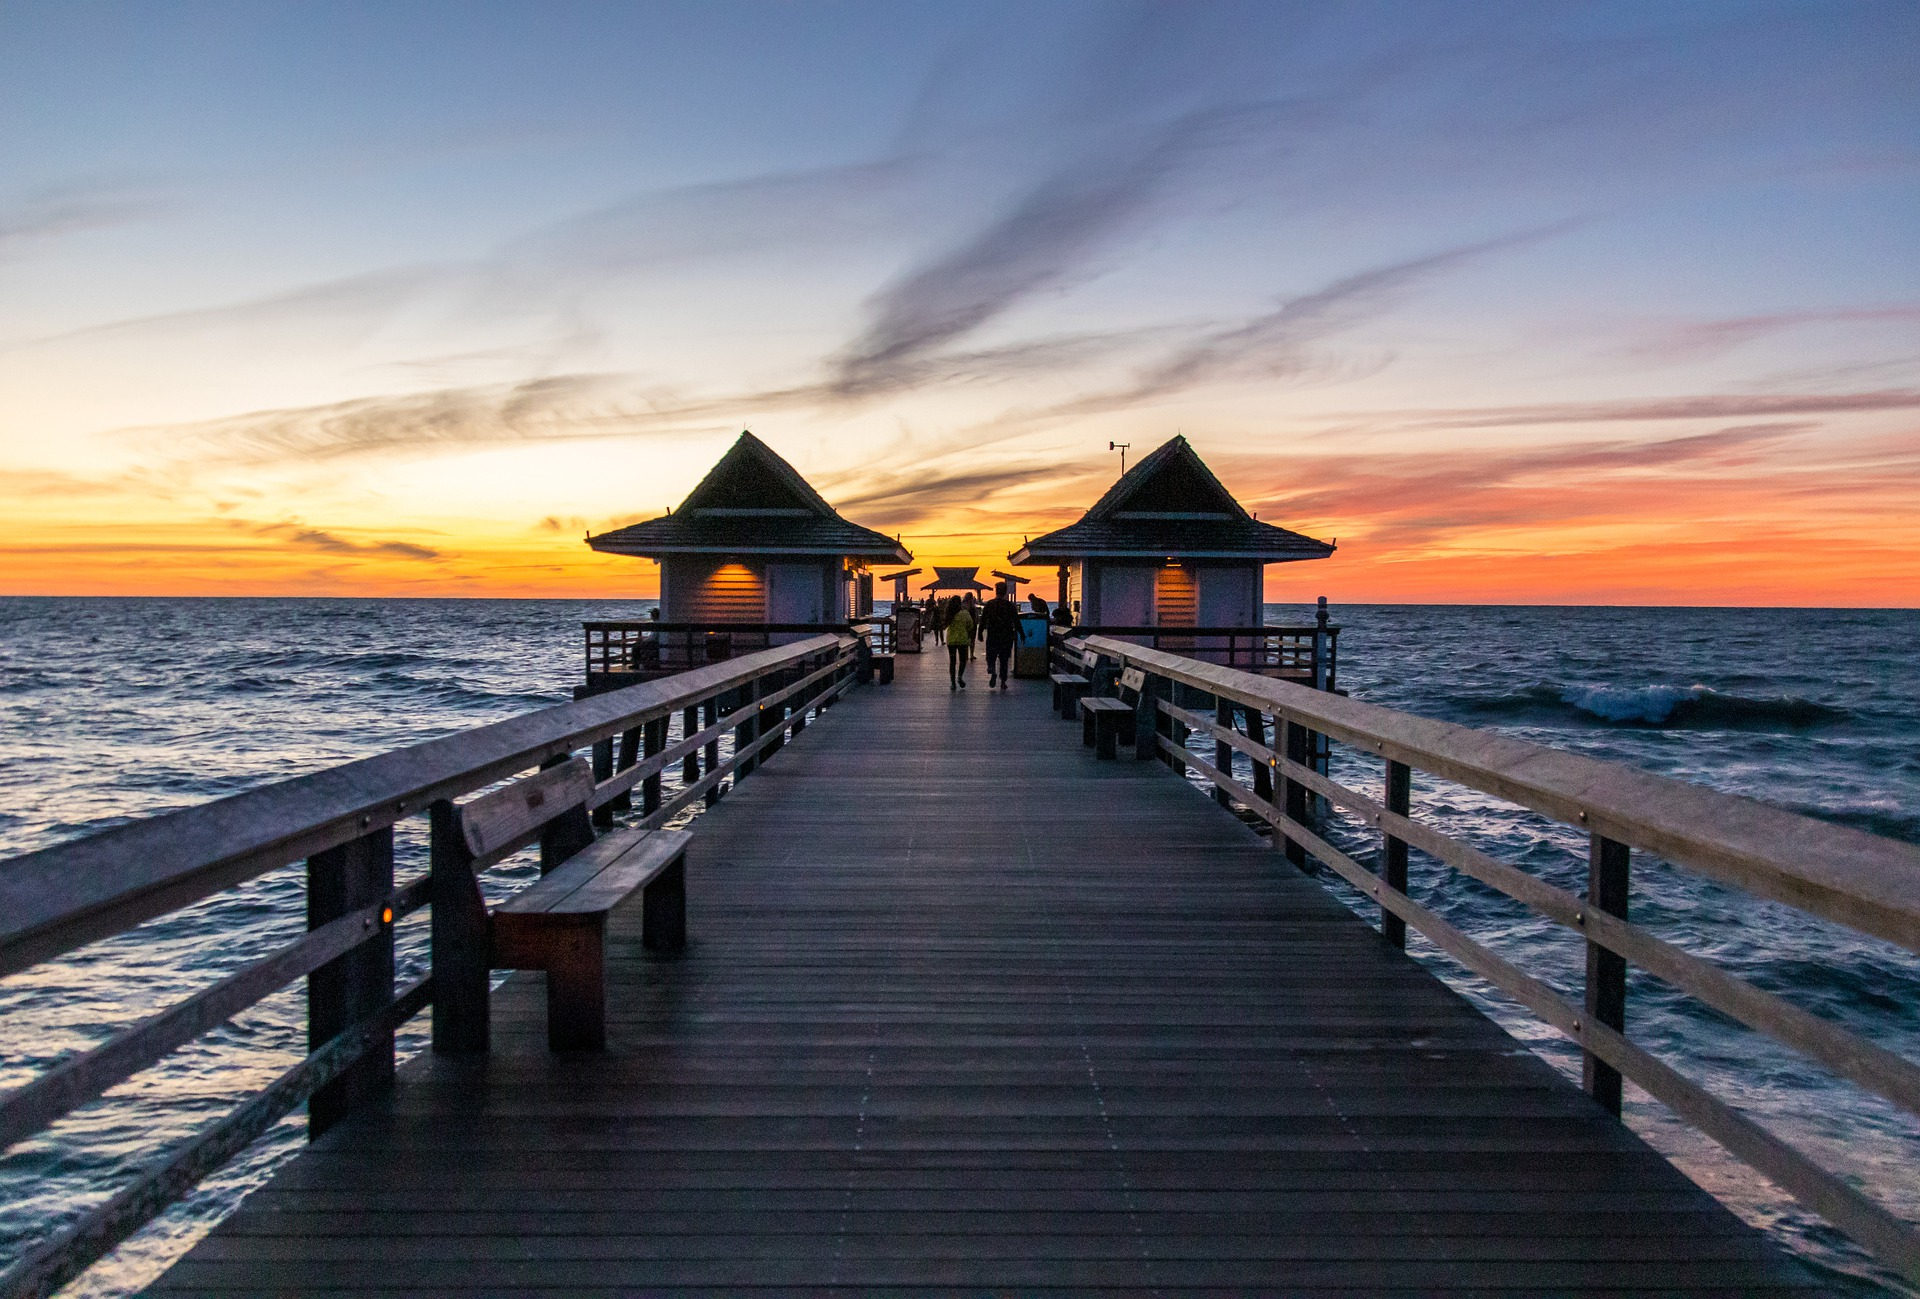 A pier stretching into the ocean toward sunset.